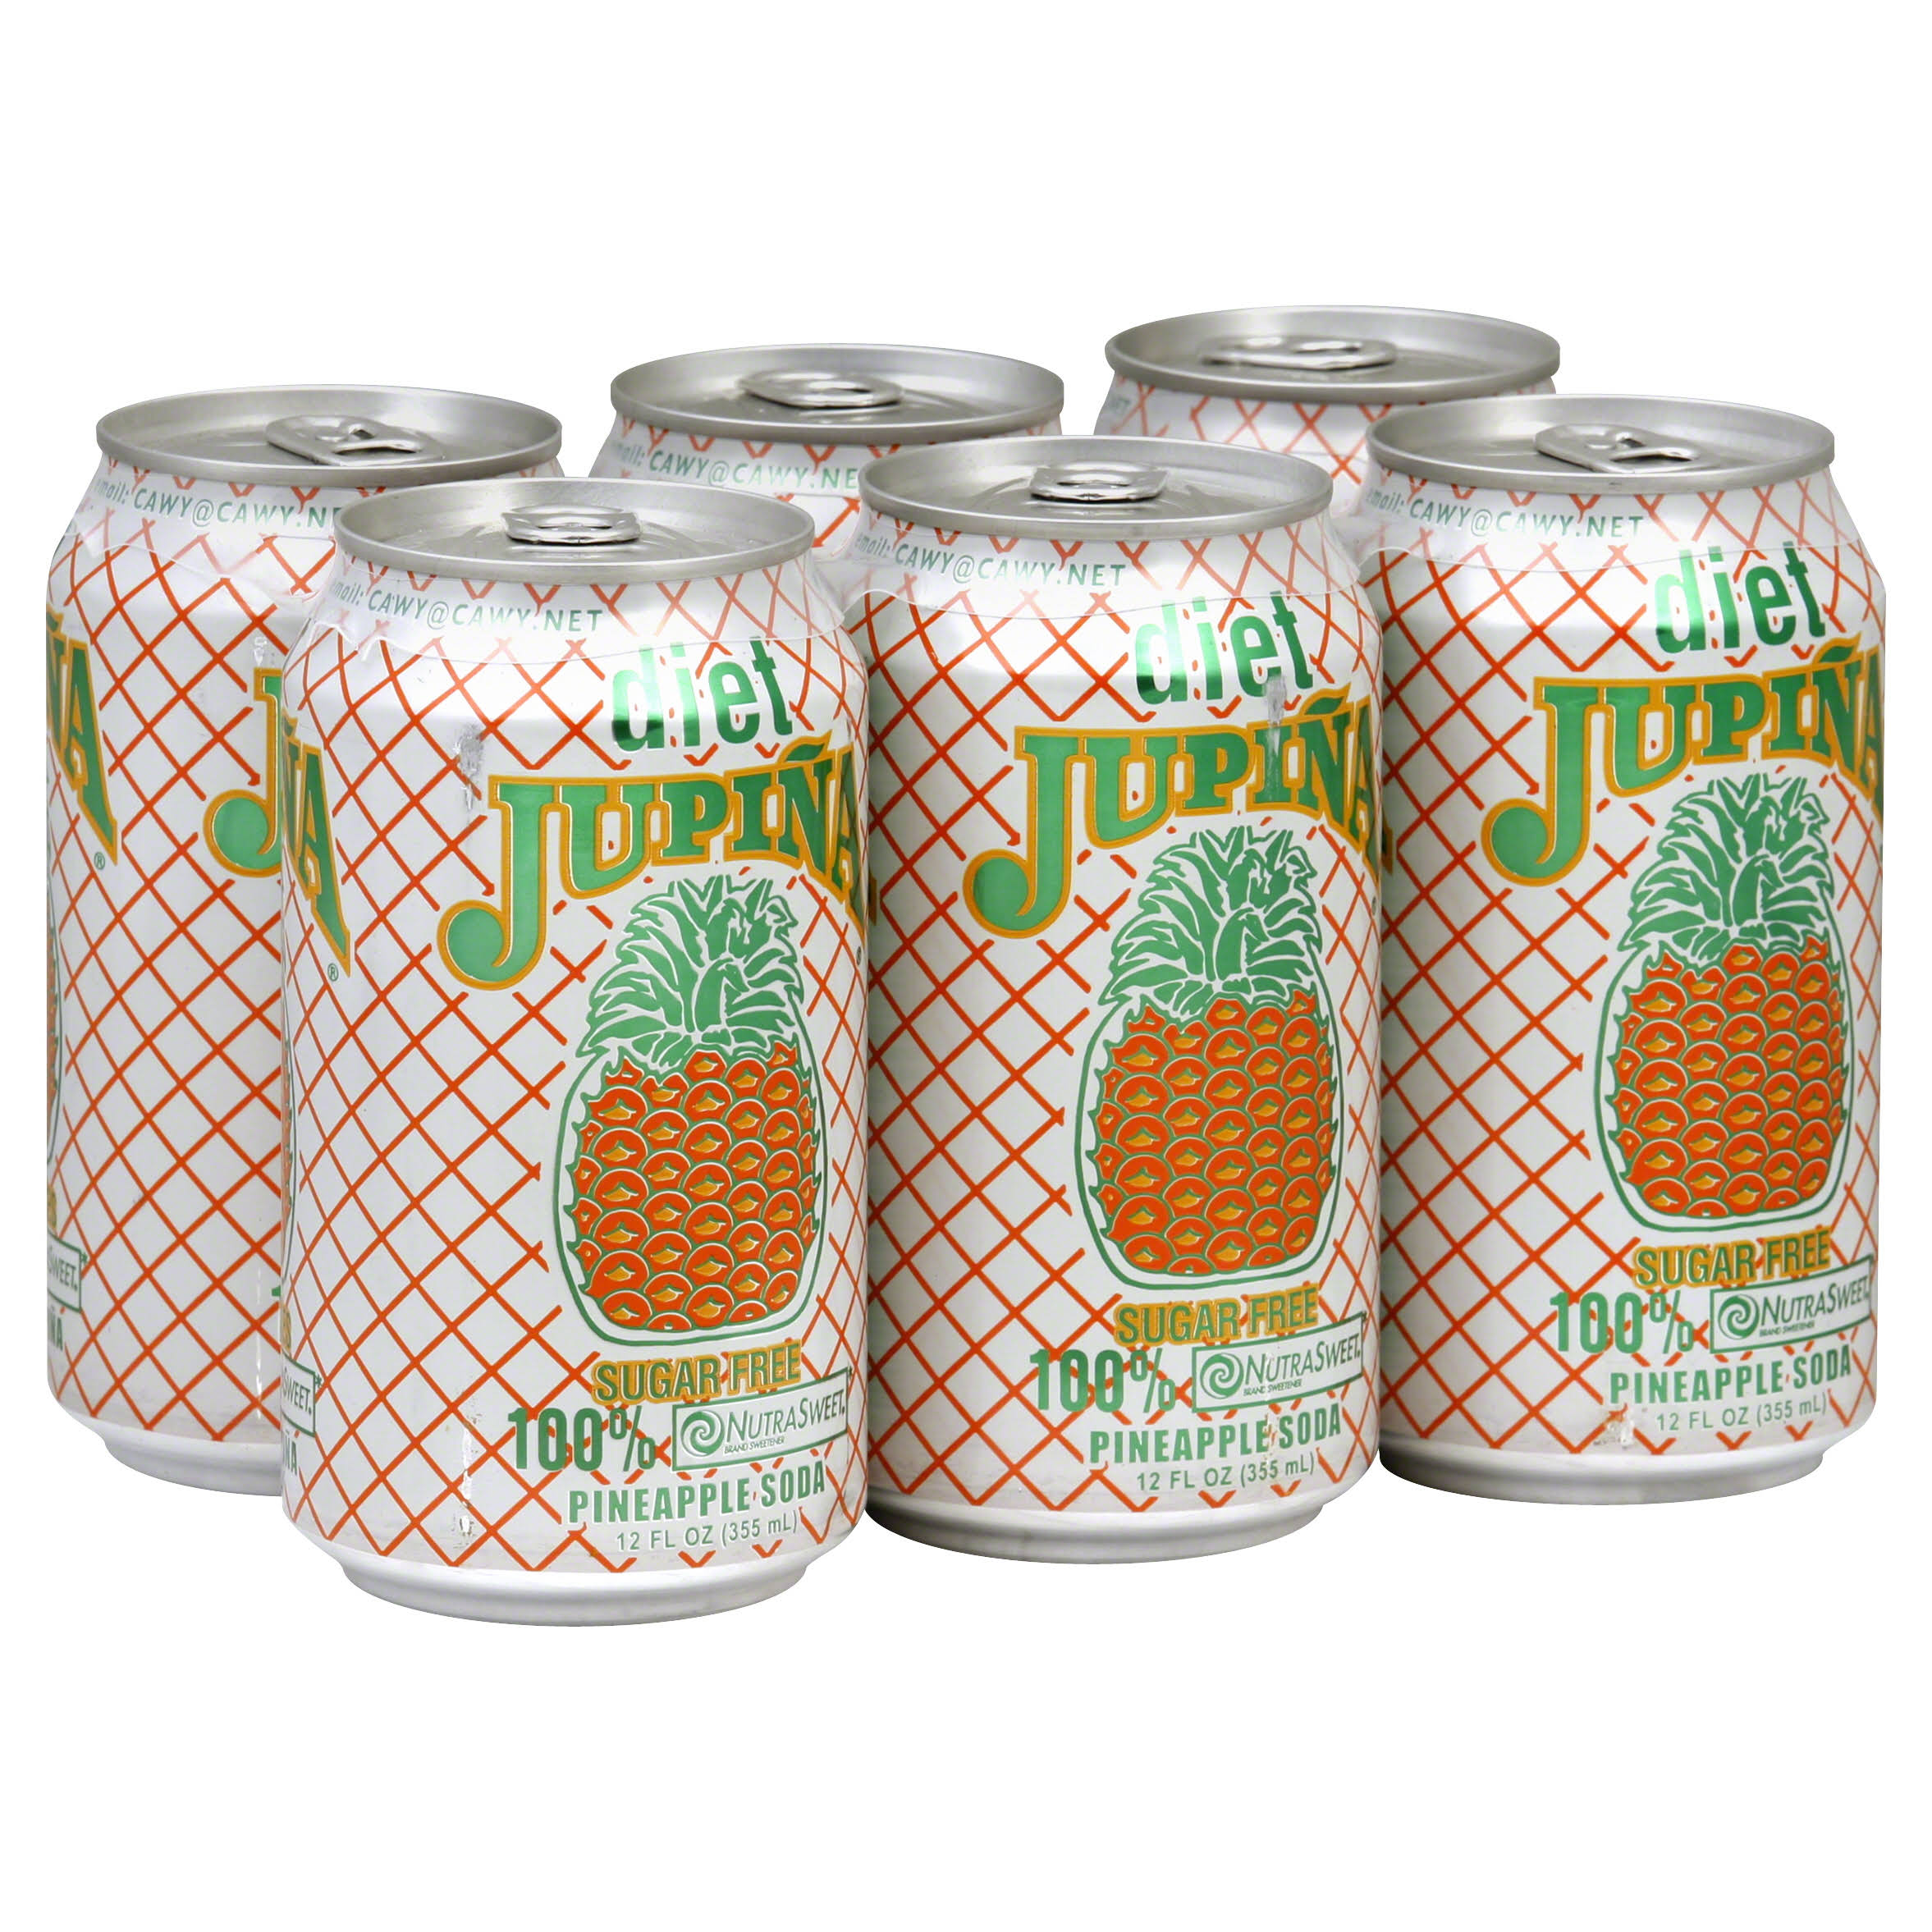 Jupina Pineapple Diet Soda - 6pk, 12oz